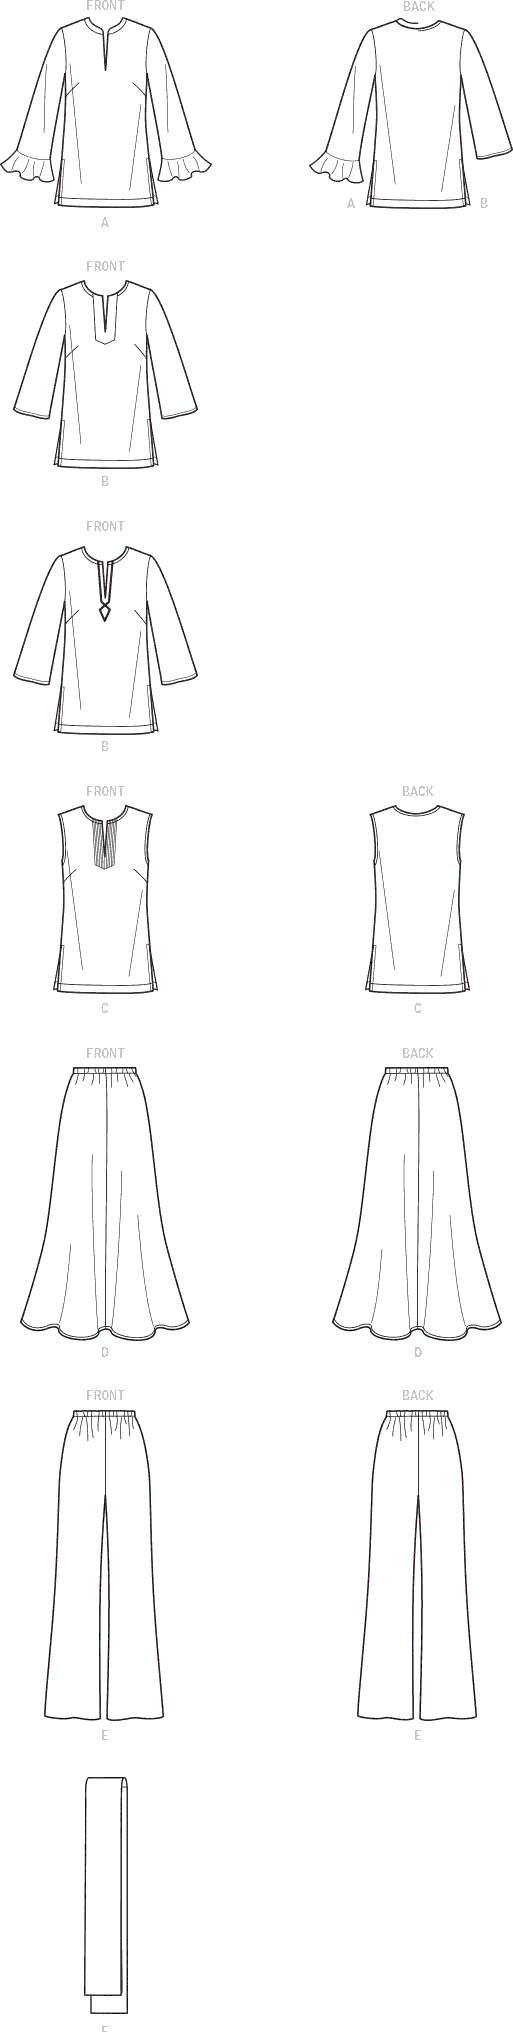 Simplicity Sewing Pattern S9130 Misses and Womens Tops and Bottoms 9130 Line Art From Patternsandplains.com